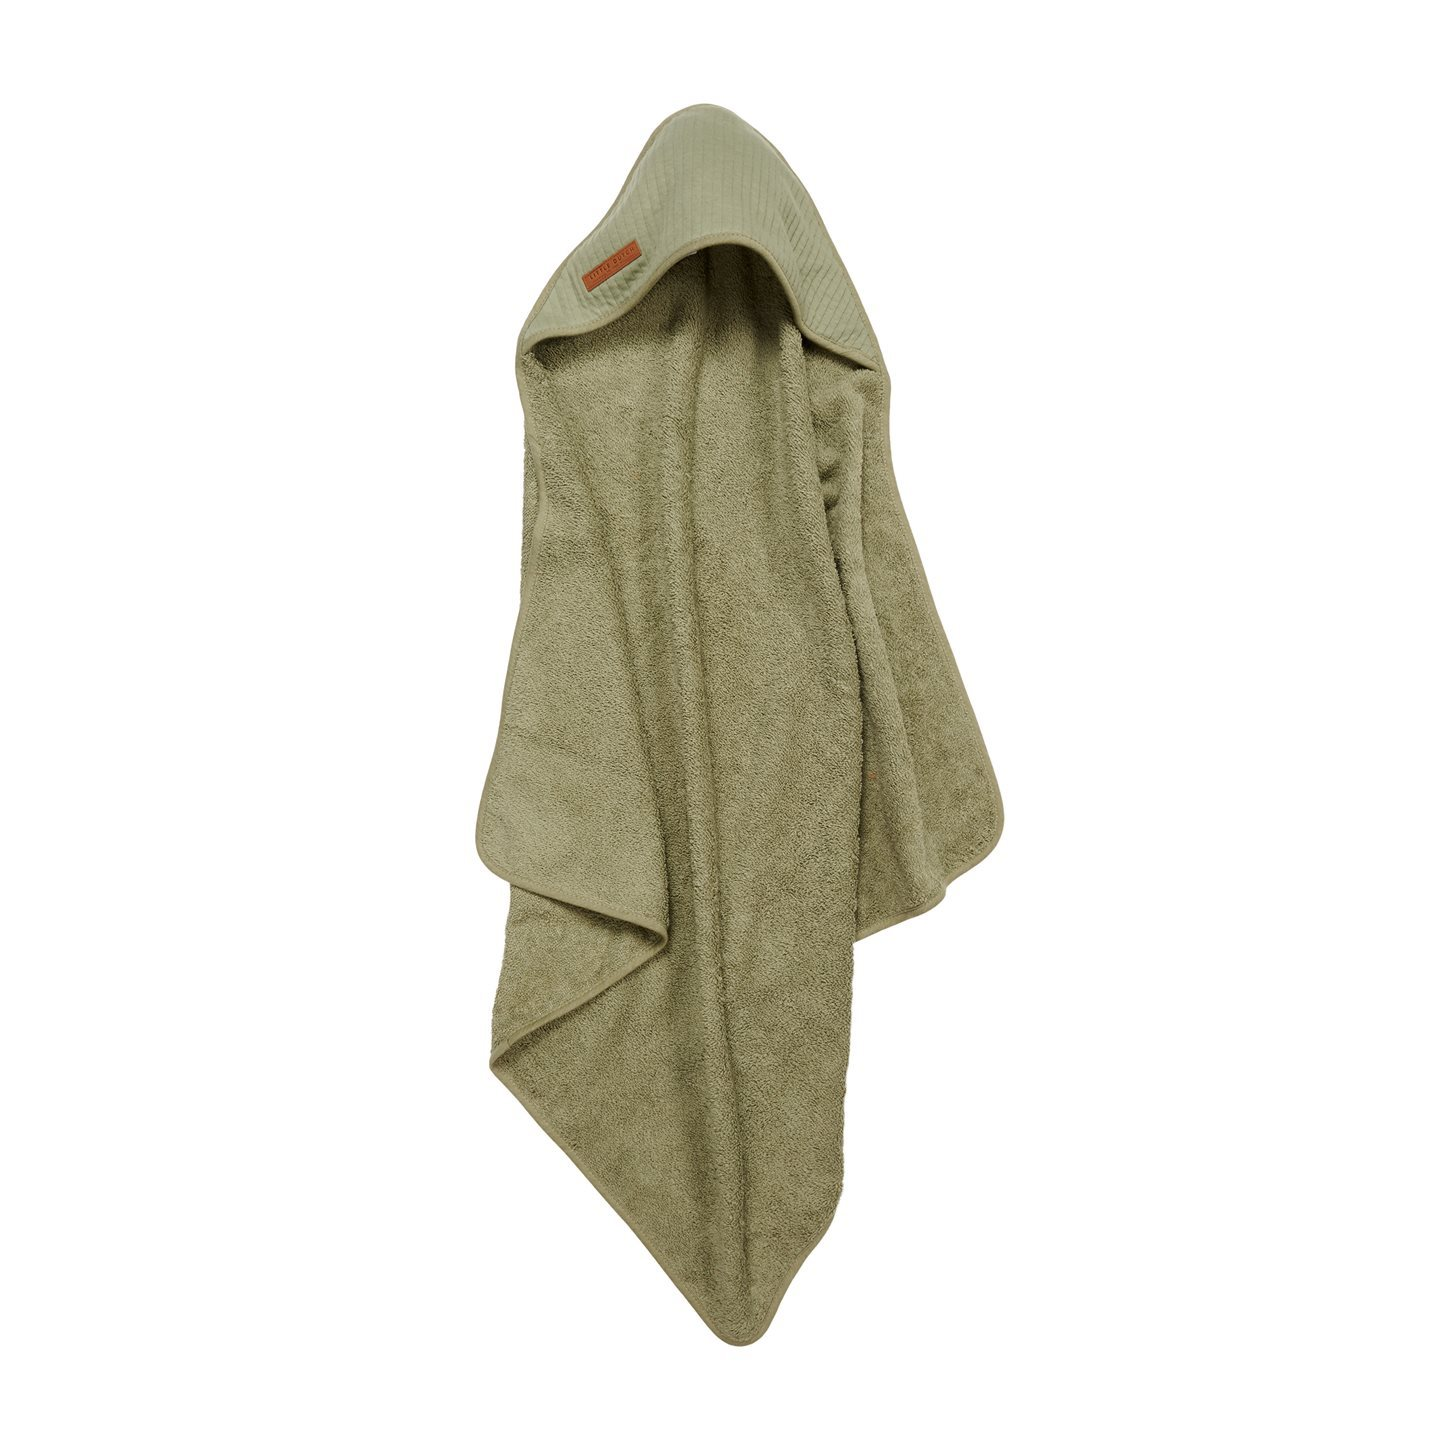 Kapuzenhandtuch Frottee Pure olive (75x75 cm)